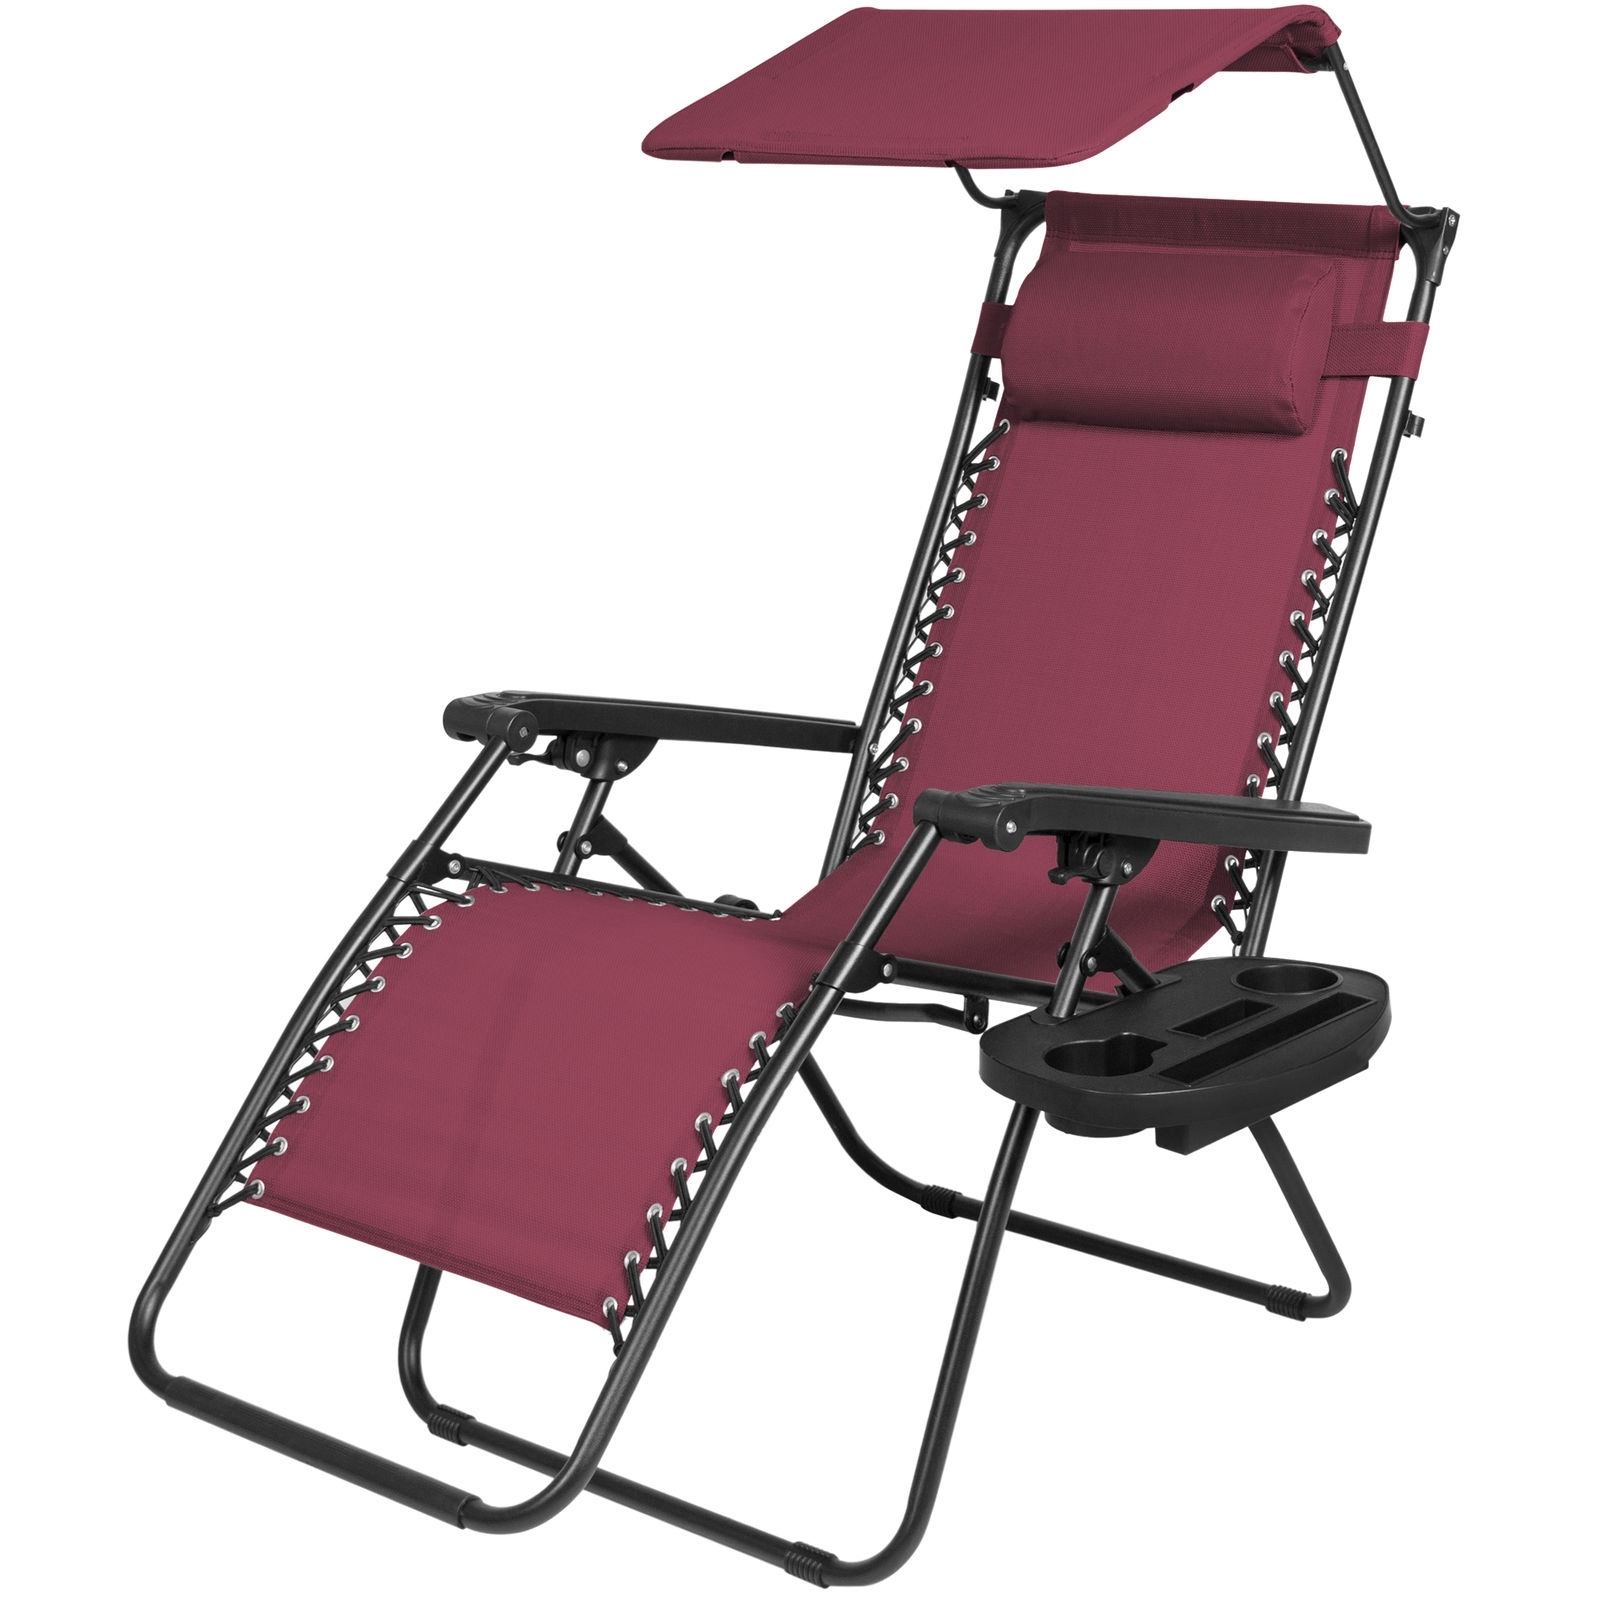 Zero Gravity Chaise Lounge Chairs In Recent Zero Gravity Lounge Chairs With Canopy • Lounge Chairs Ideas (View 14 of 15)